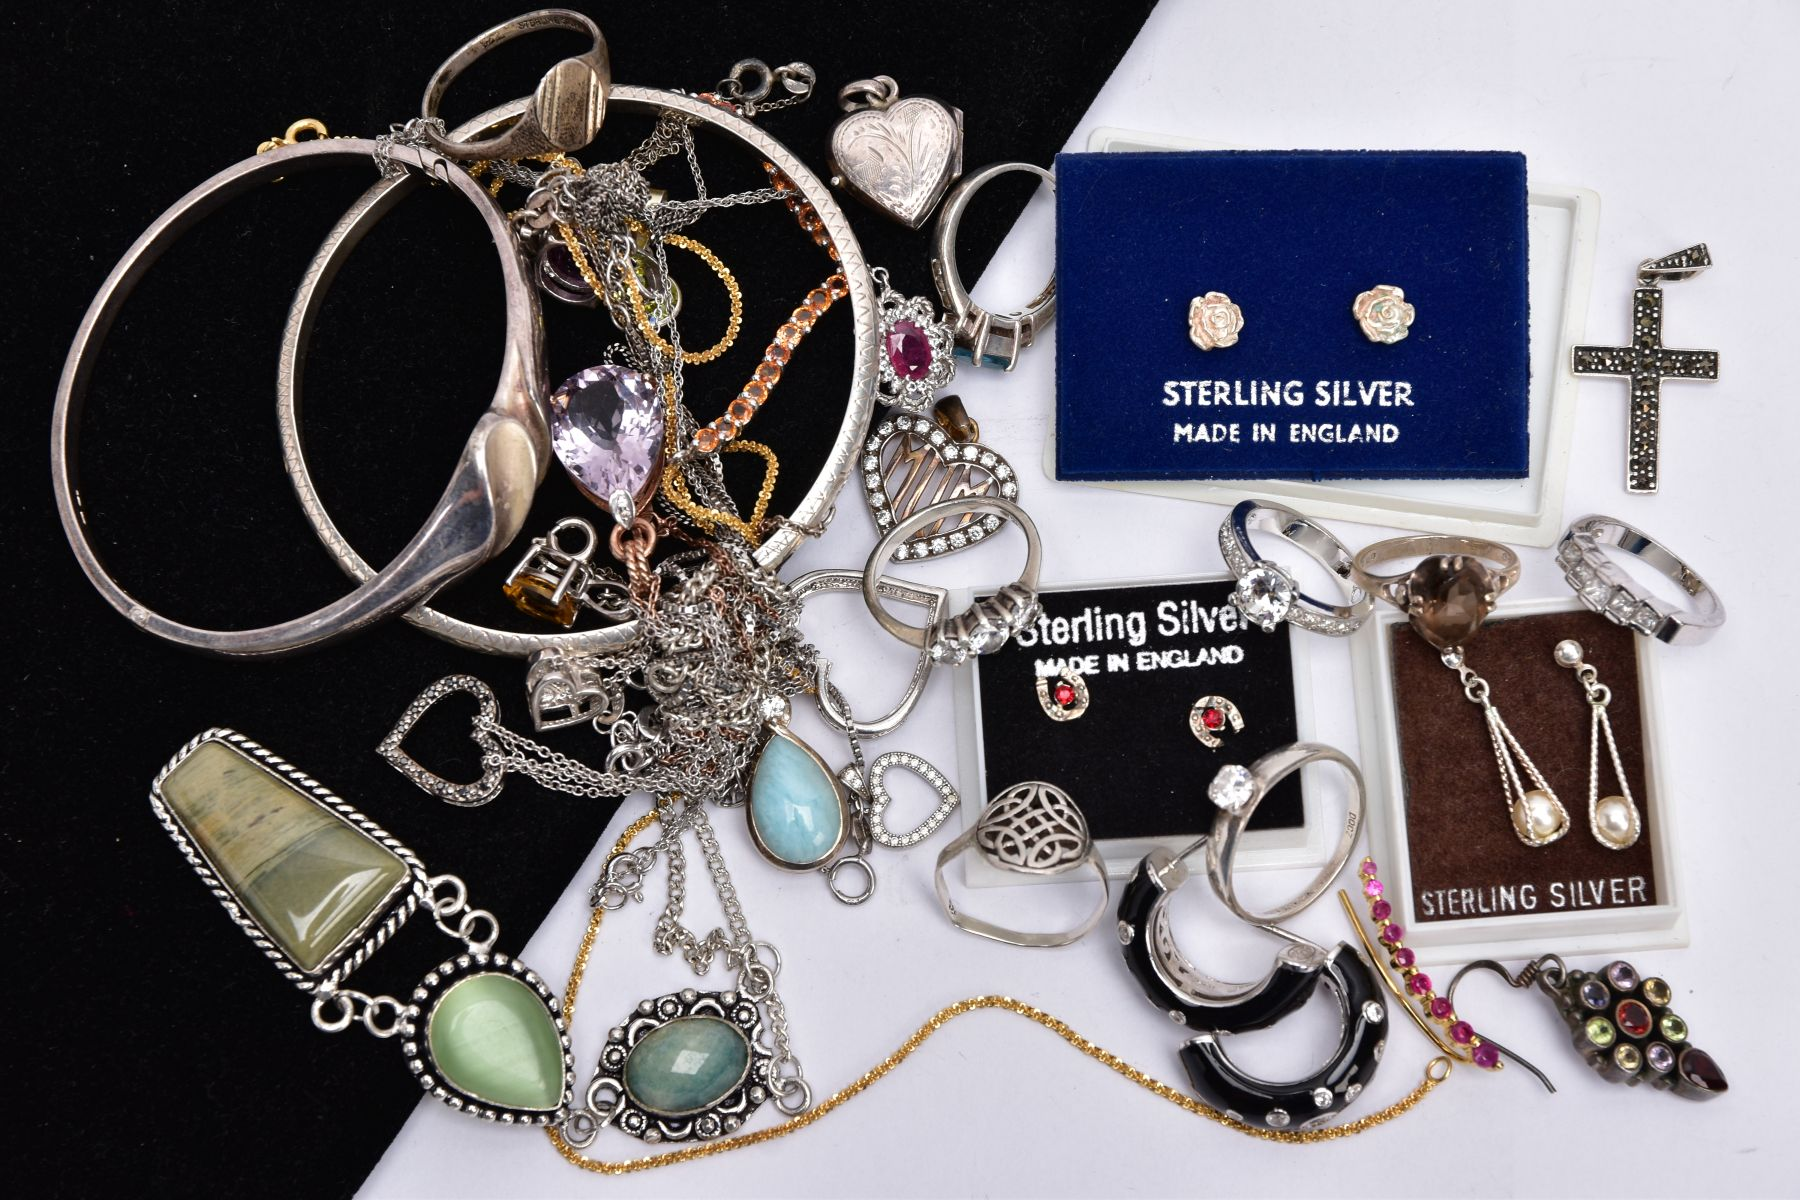 A BAG OF ASSORTED JEWELLERY, to include a silver ring set with an oval smokey quartz, bifurcated